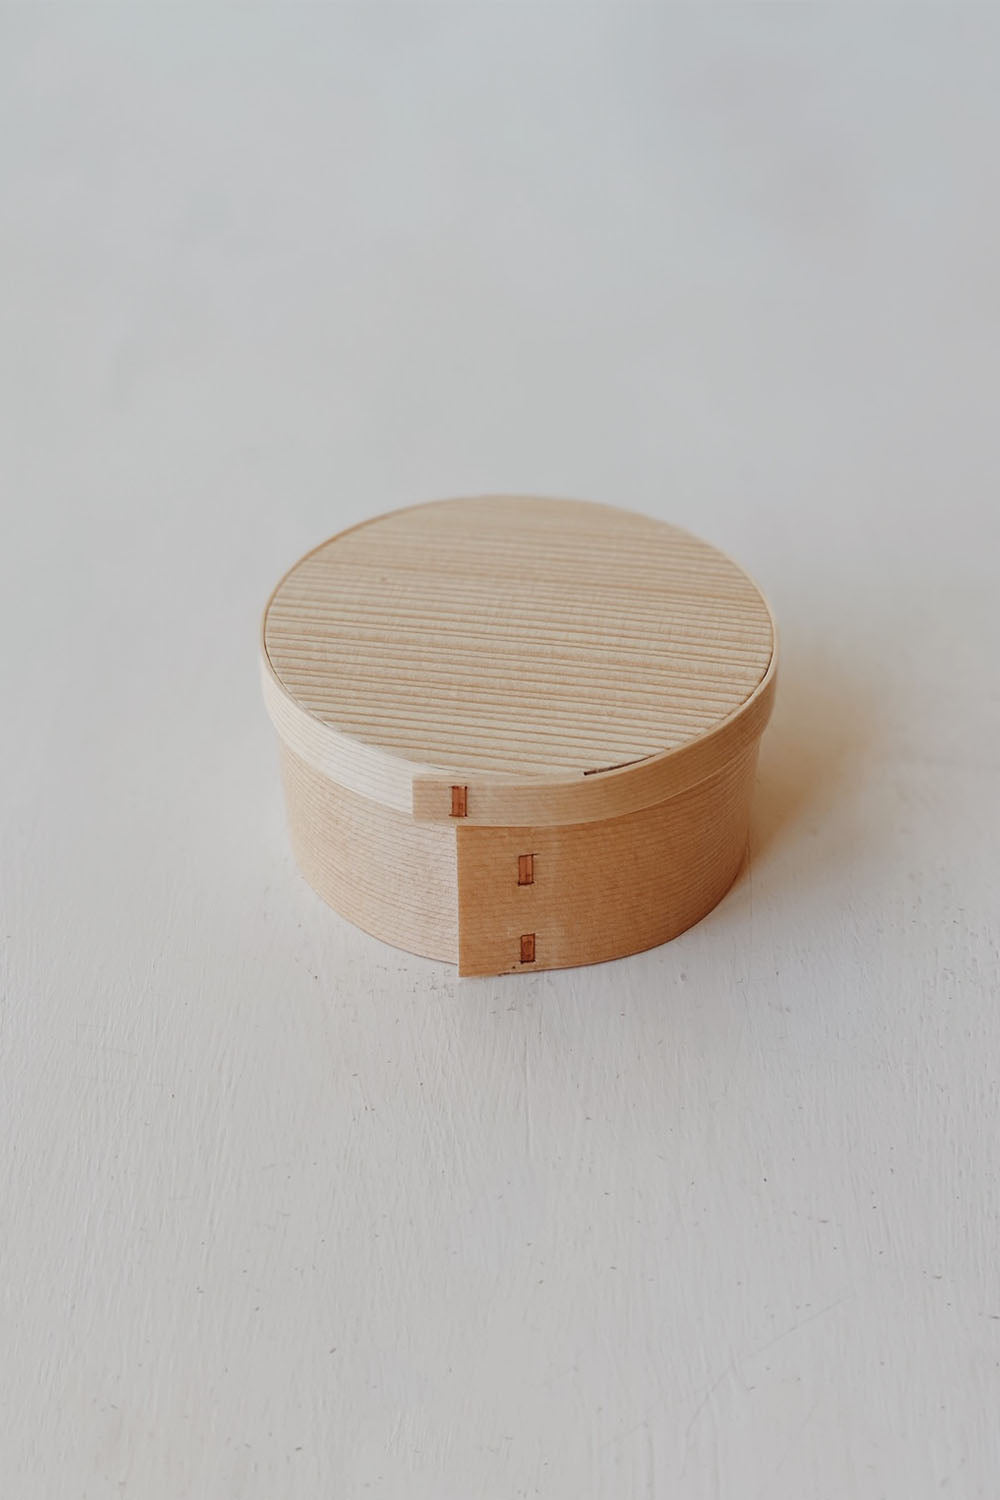 Japanese Wooden Box - Small